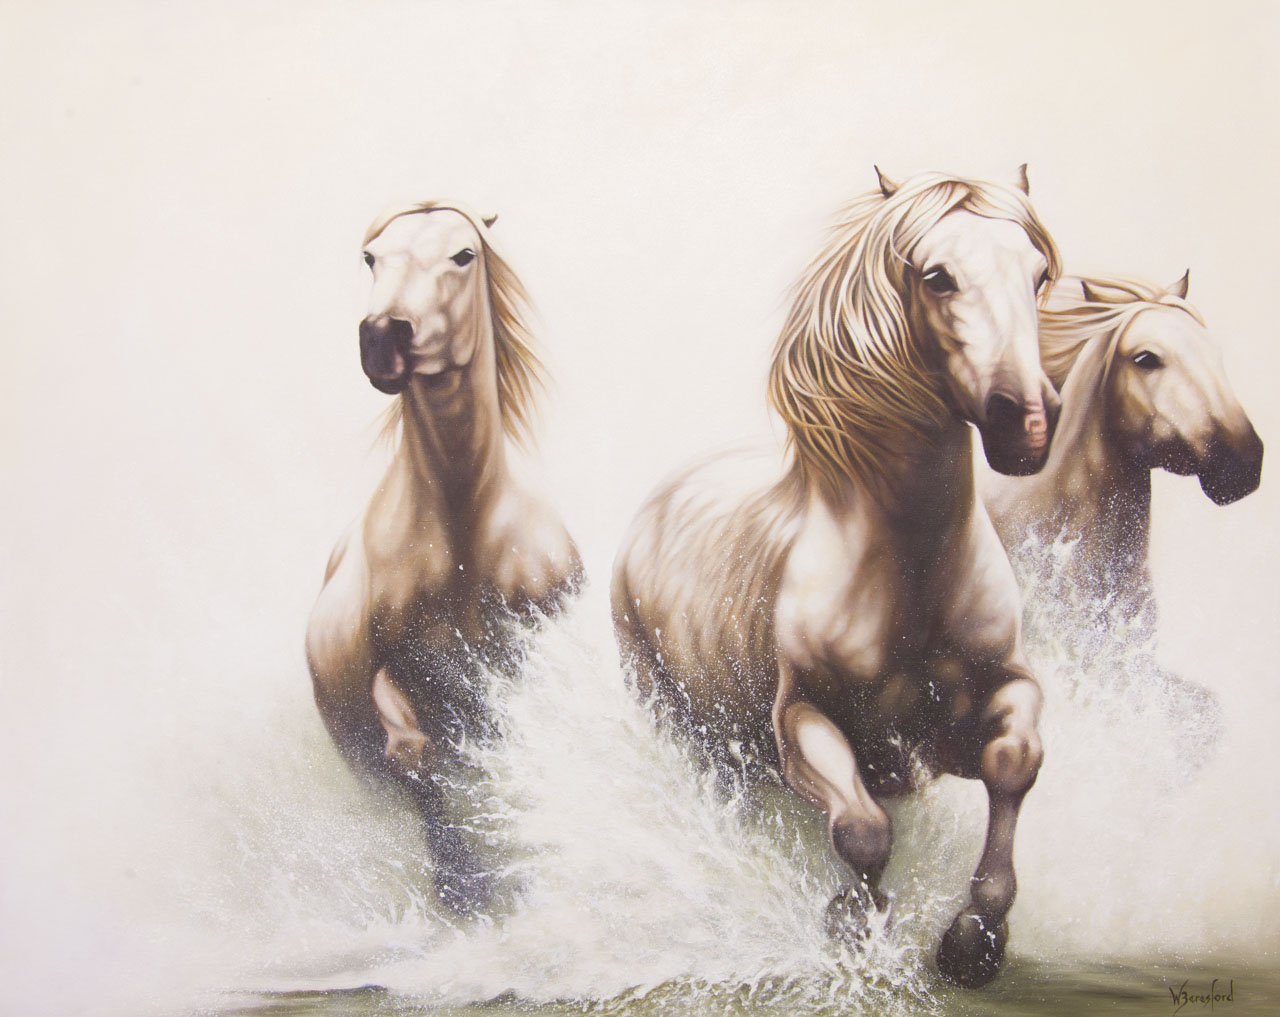 POWER OF EQUUS Oil on Canvas, 1220mm x 980mm more info